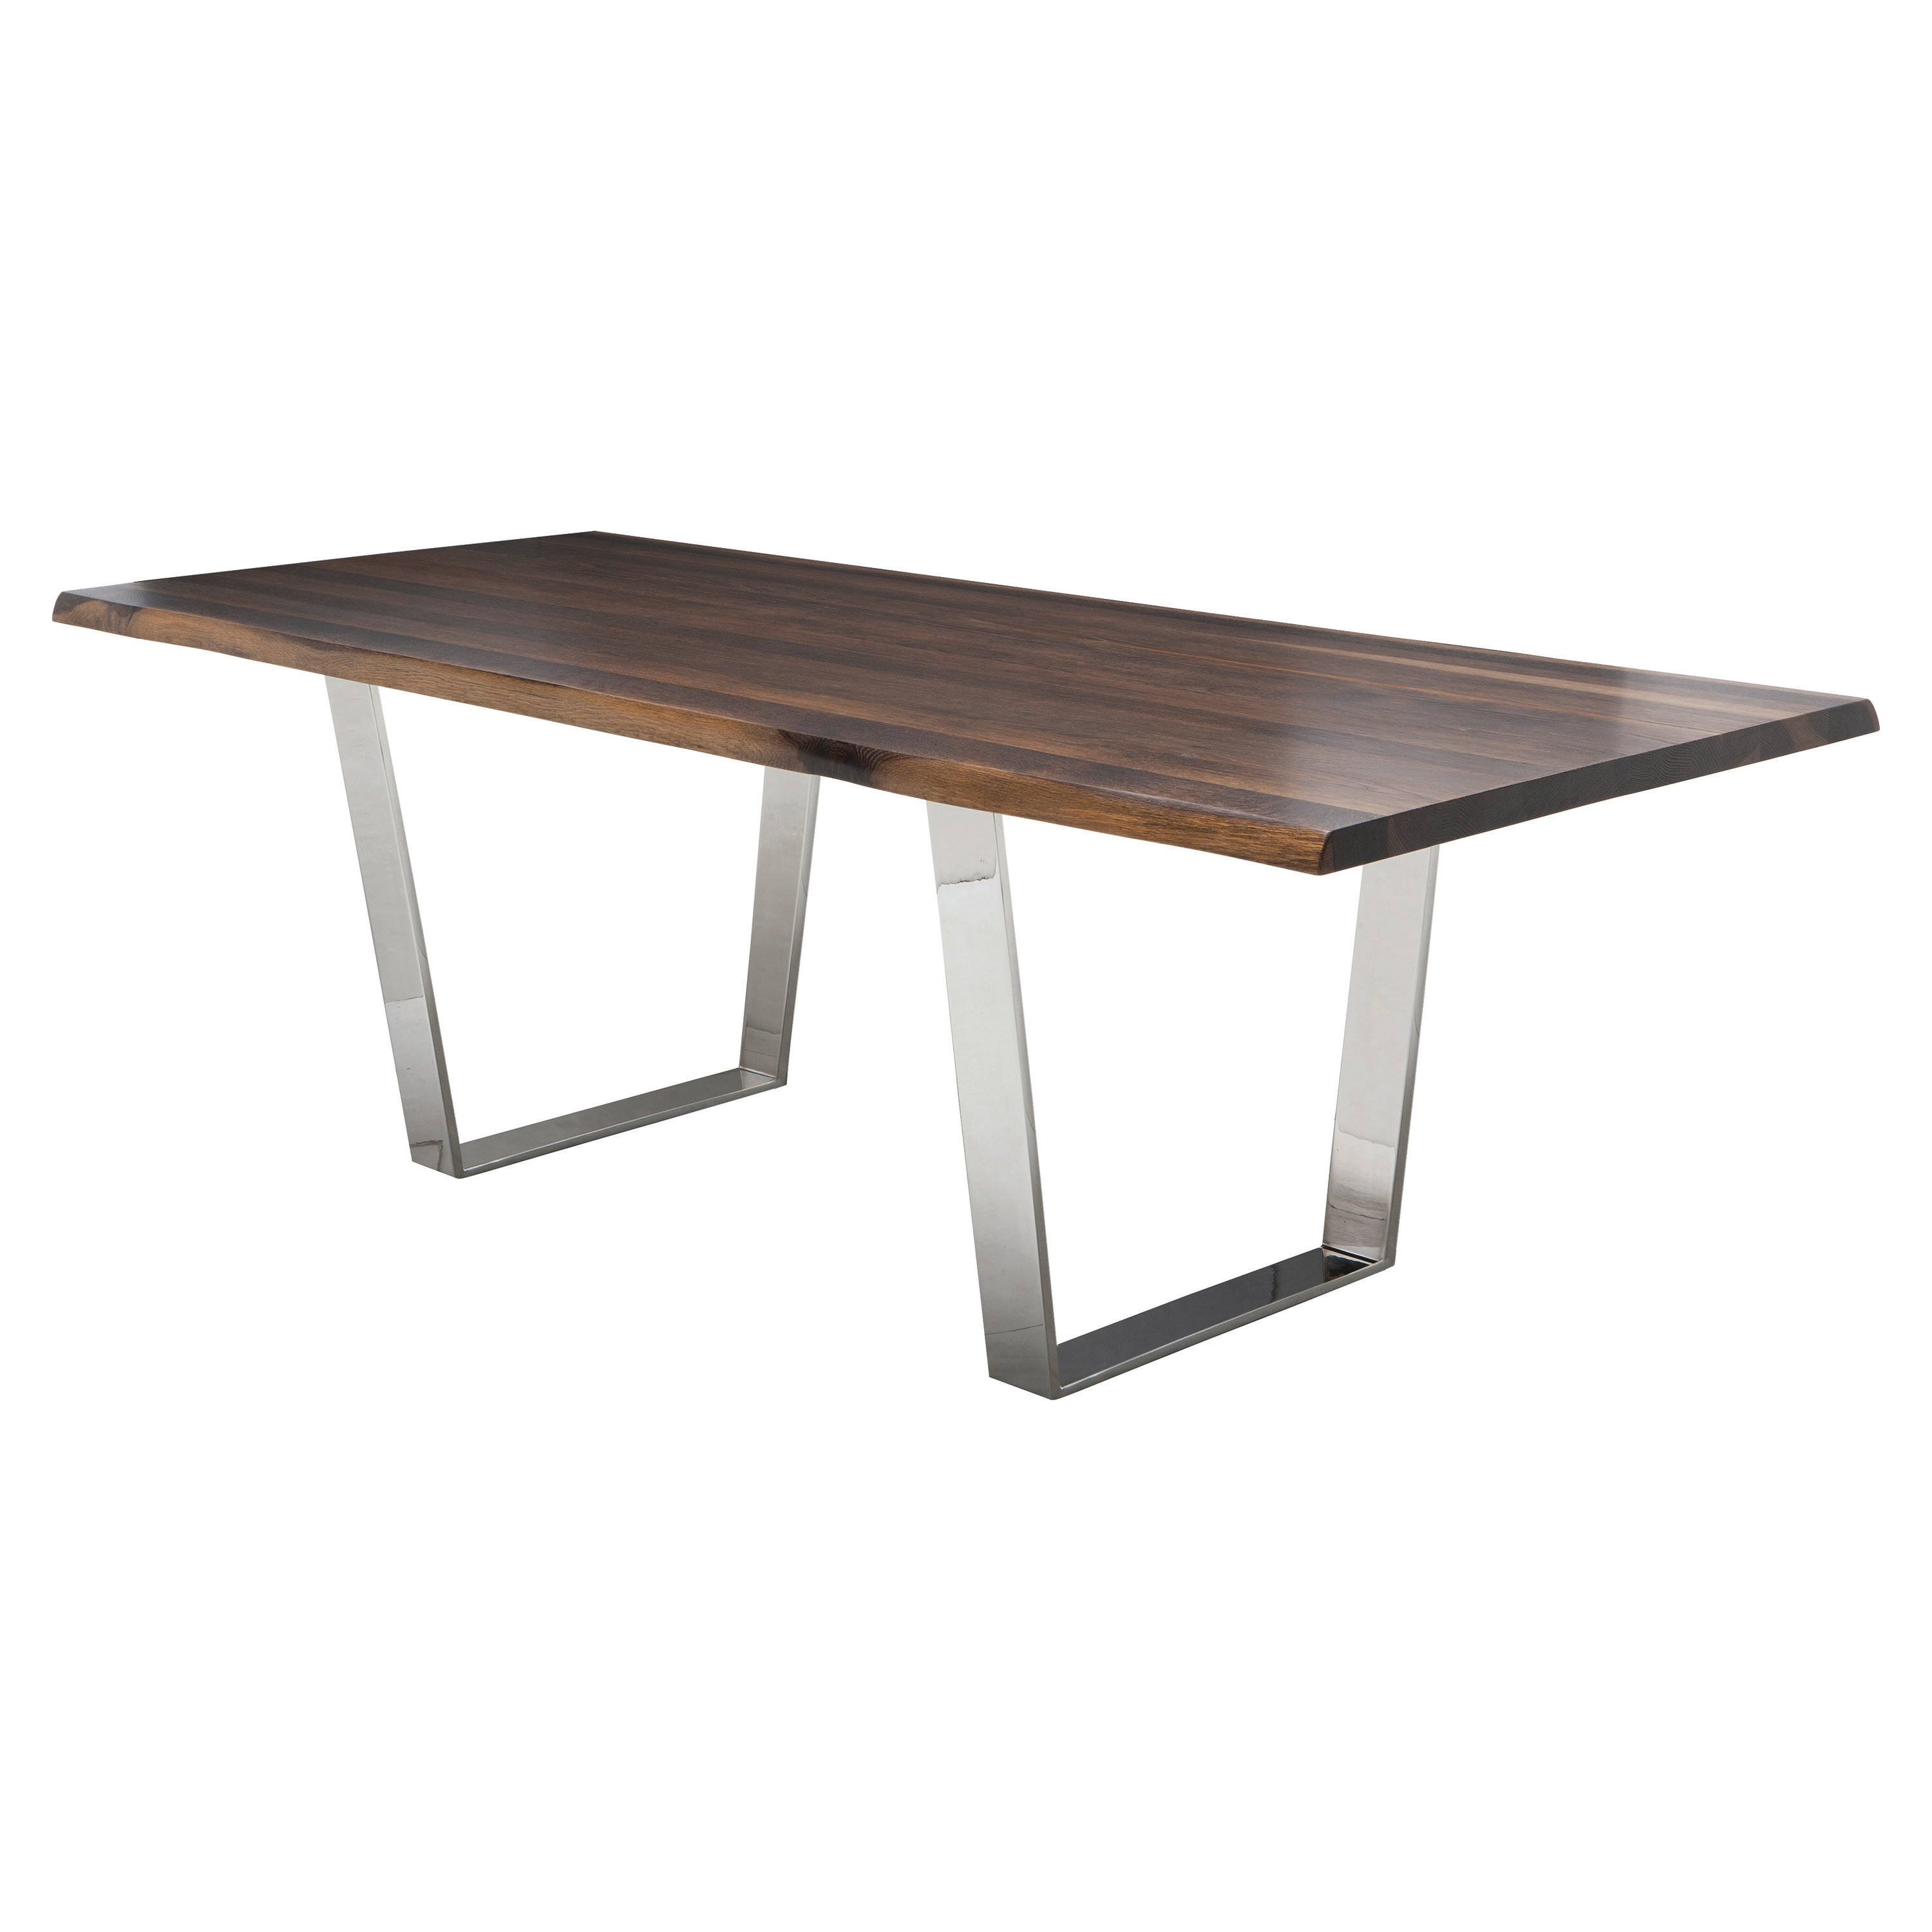 Cogsworth Industrial Brown Oak Stainless Steel Dining Table - 96W